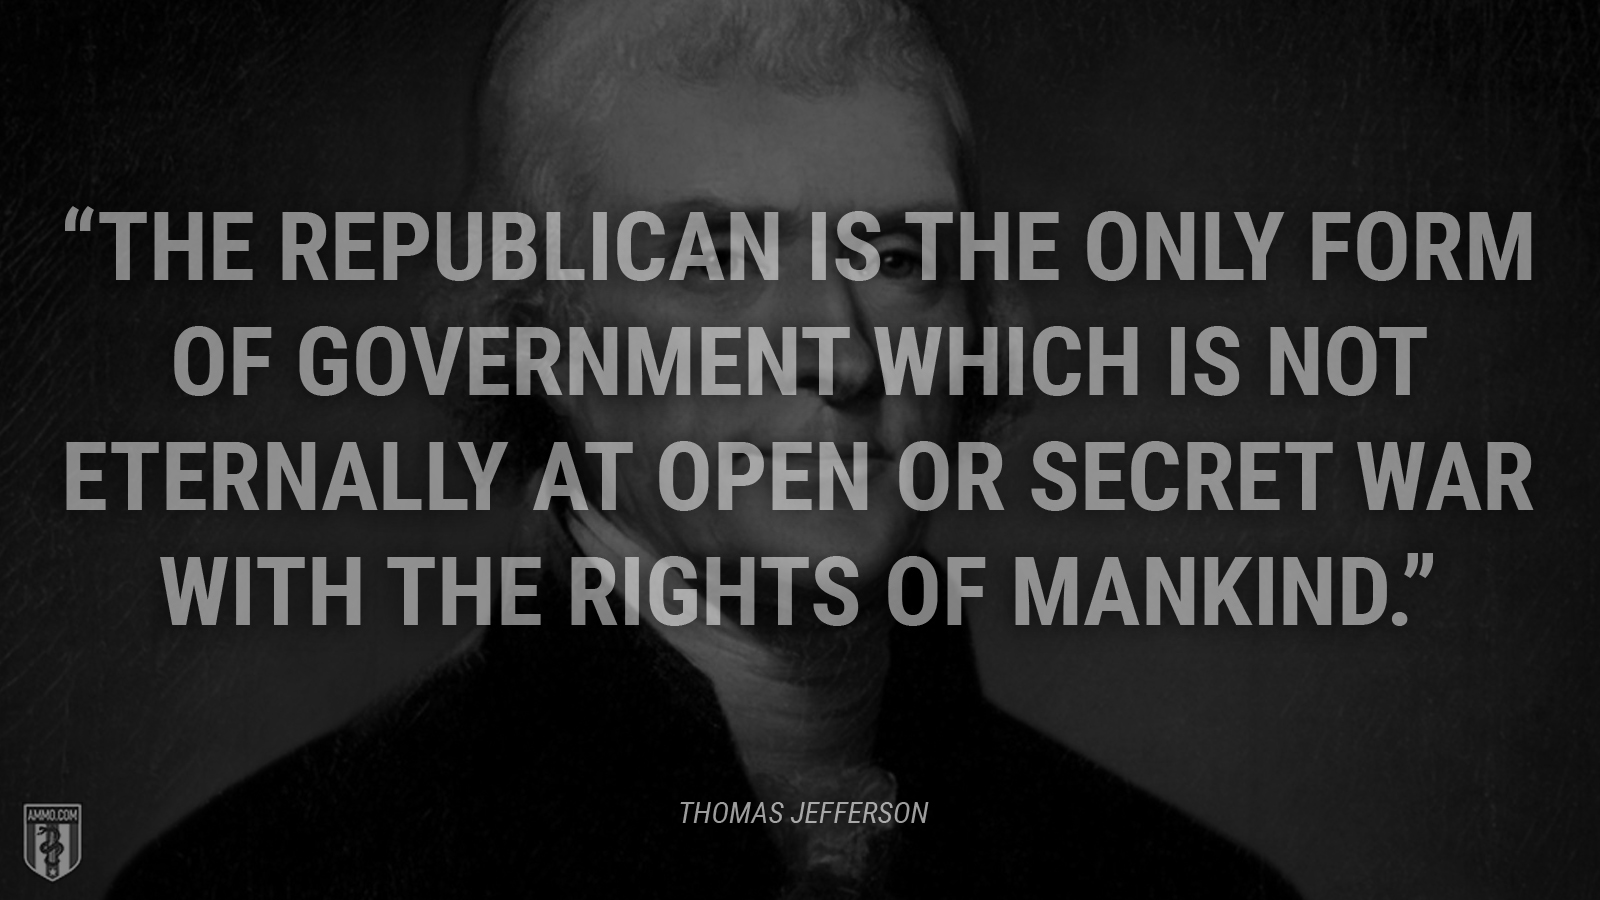 """""""The republican is the only form of government which is not eternally at open or secret war with the rights of mankind."""" - Thomas Jefferson"""